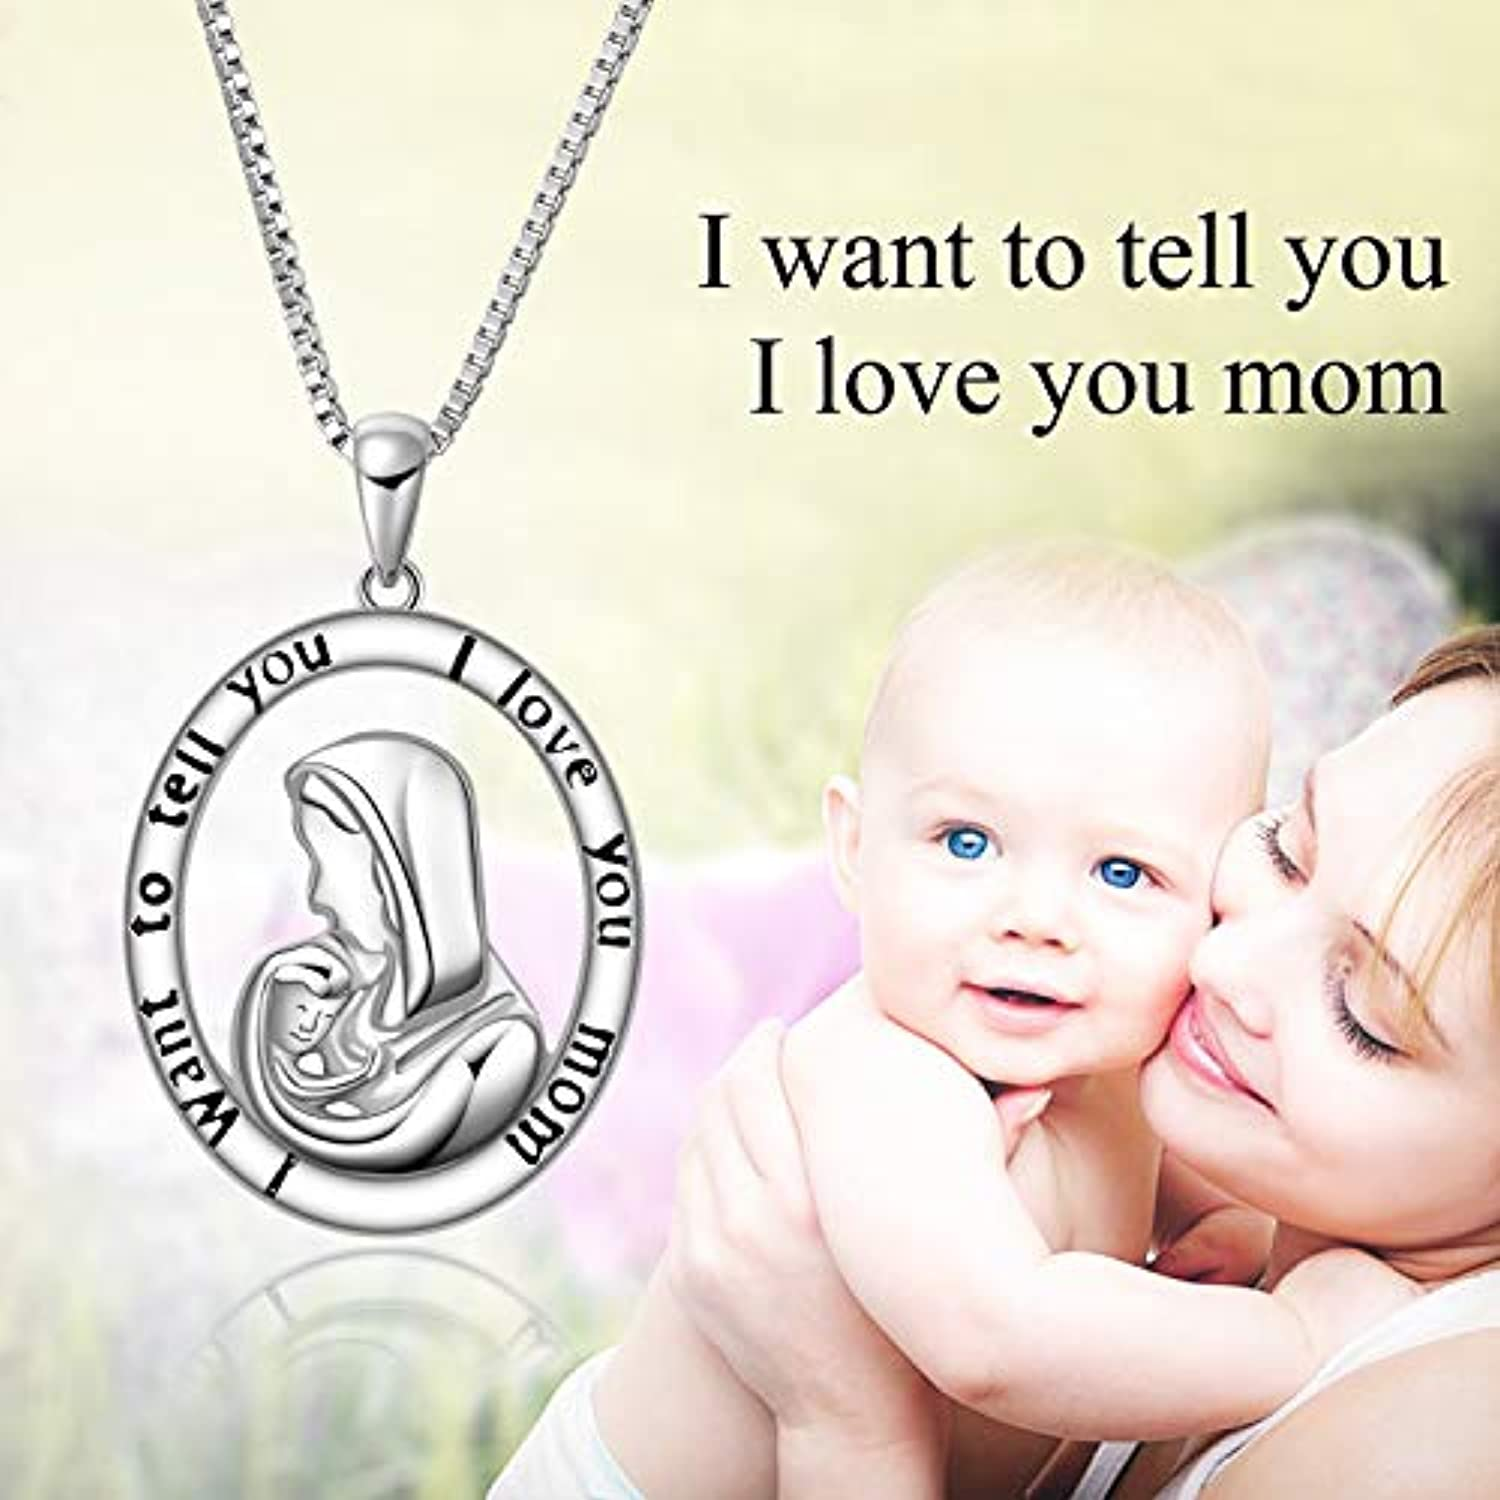 Angel caller Mother Daughter Jewelry Necklace Sterling Silver Love Heart Mother and Child Jewelry for Women Girls